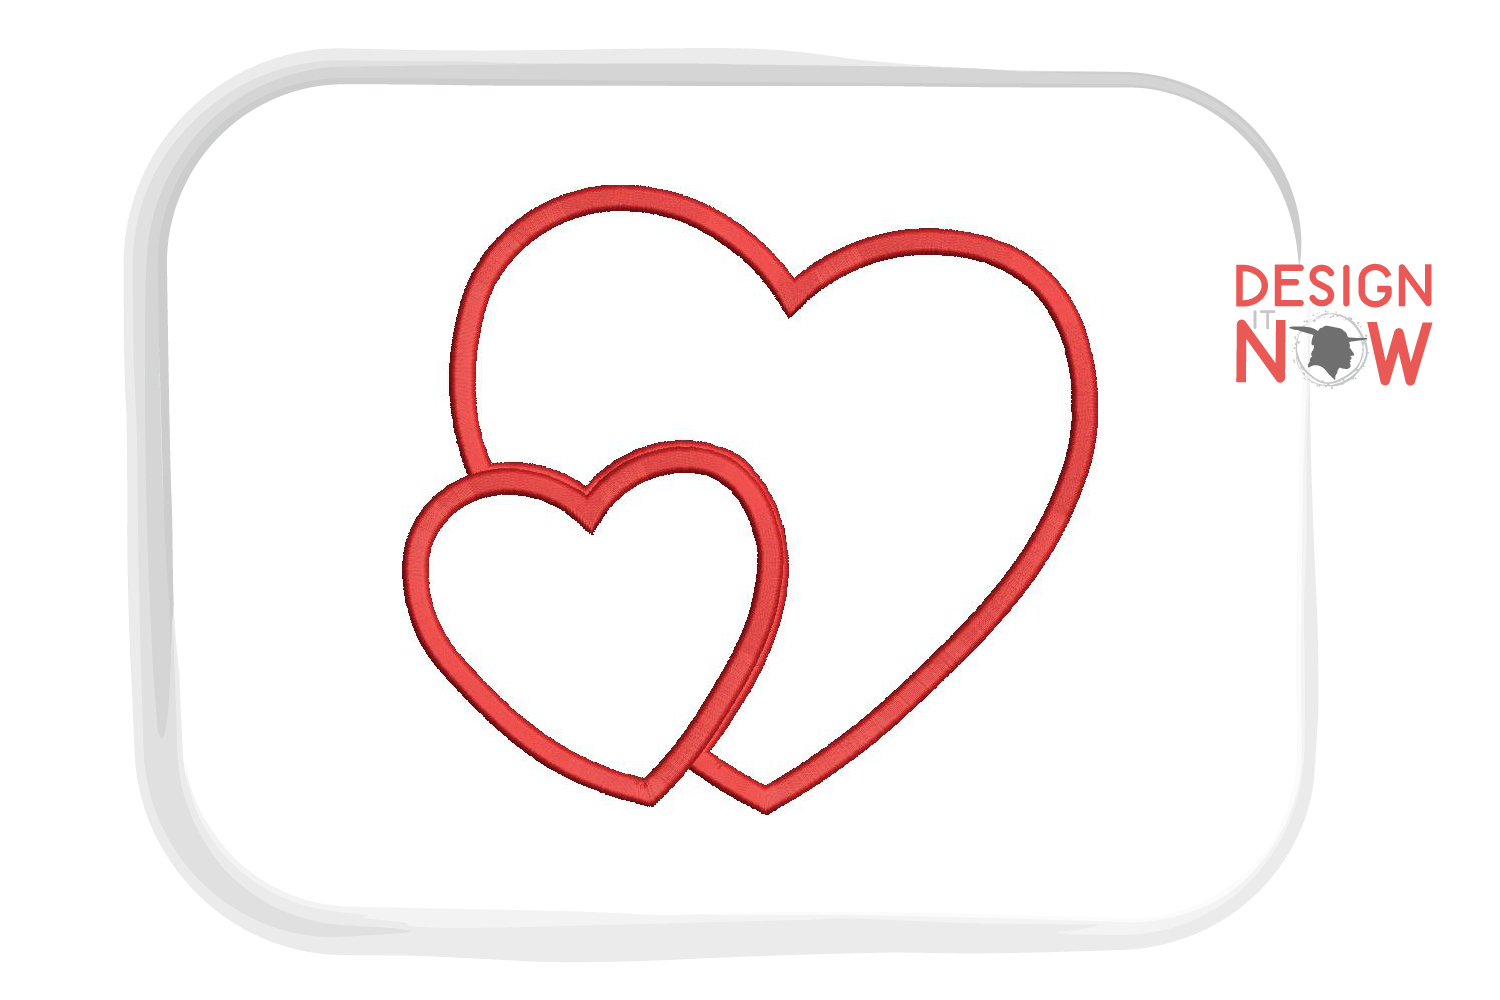 Heart Applique Embroidery Design, Heart Embroidery Pattern example image 4